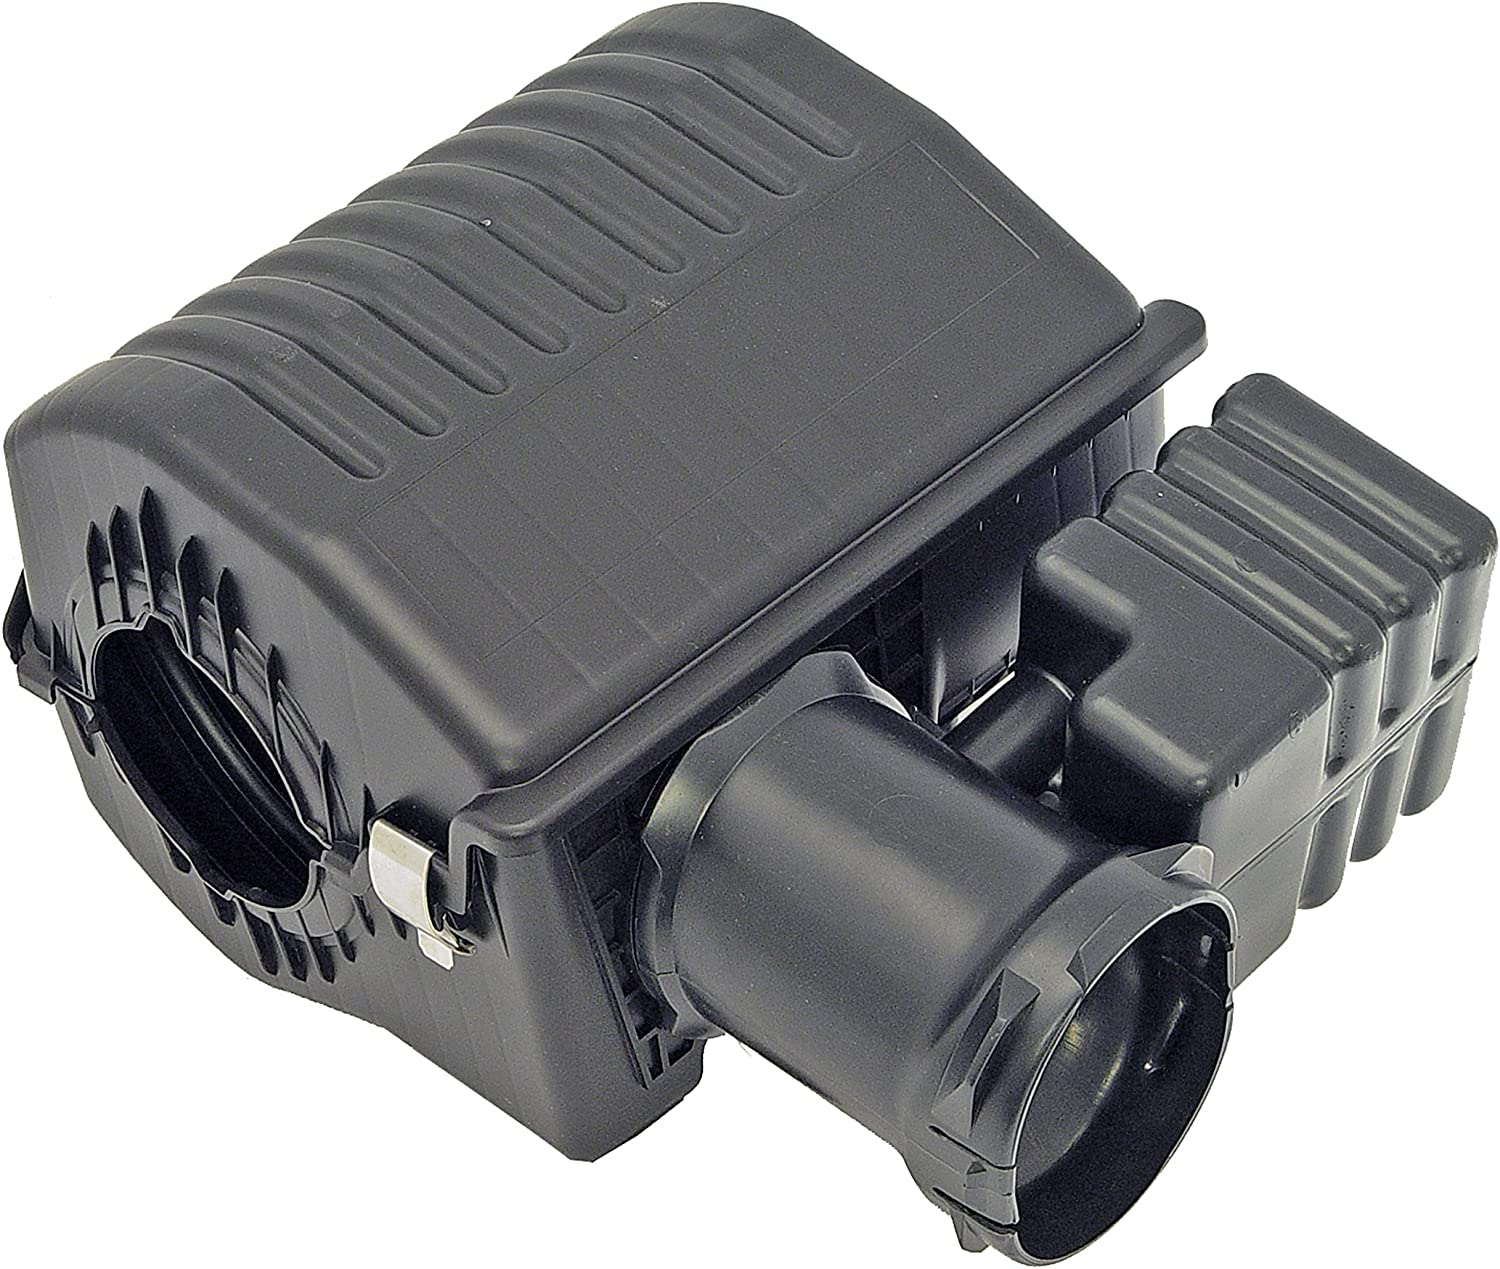 Dorman Online limited product 258-505 Air Box Rapid rise Black Filter